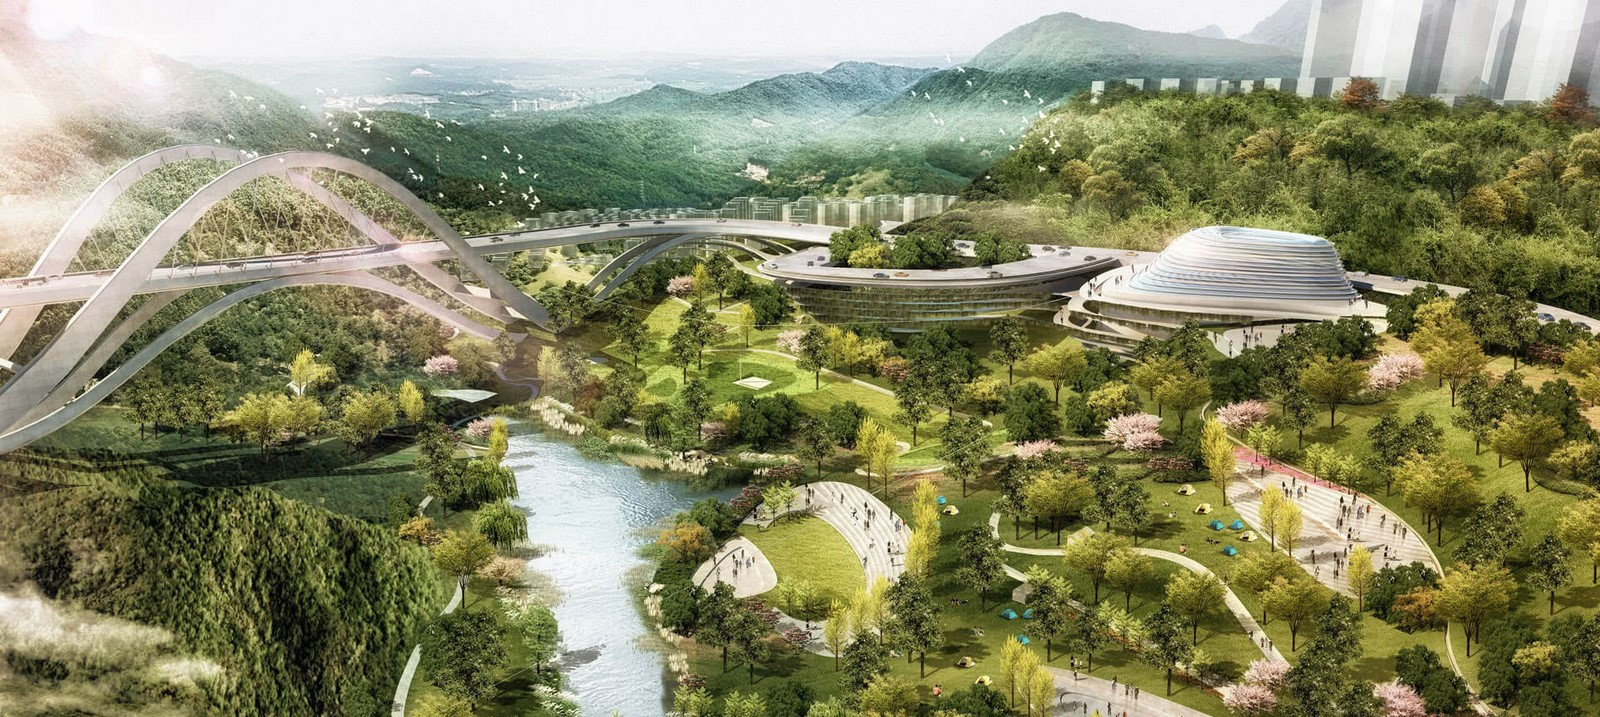 10 Books related to Landscape Architecture everyone should read - Sheet1